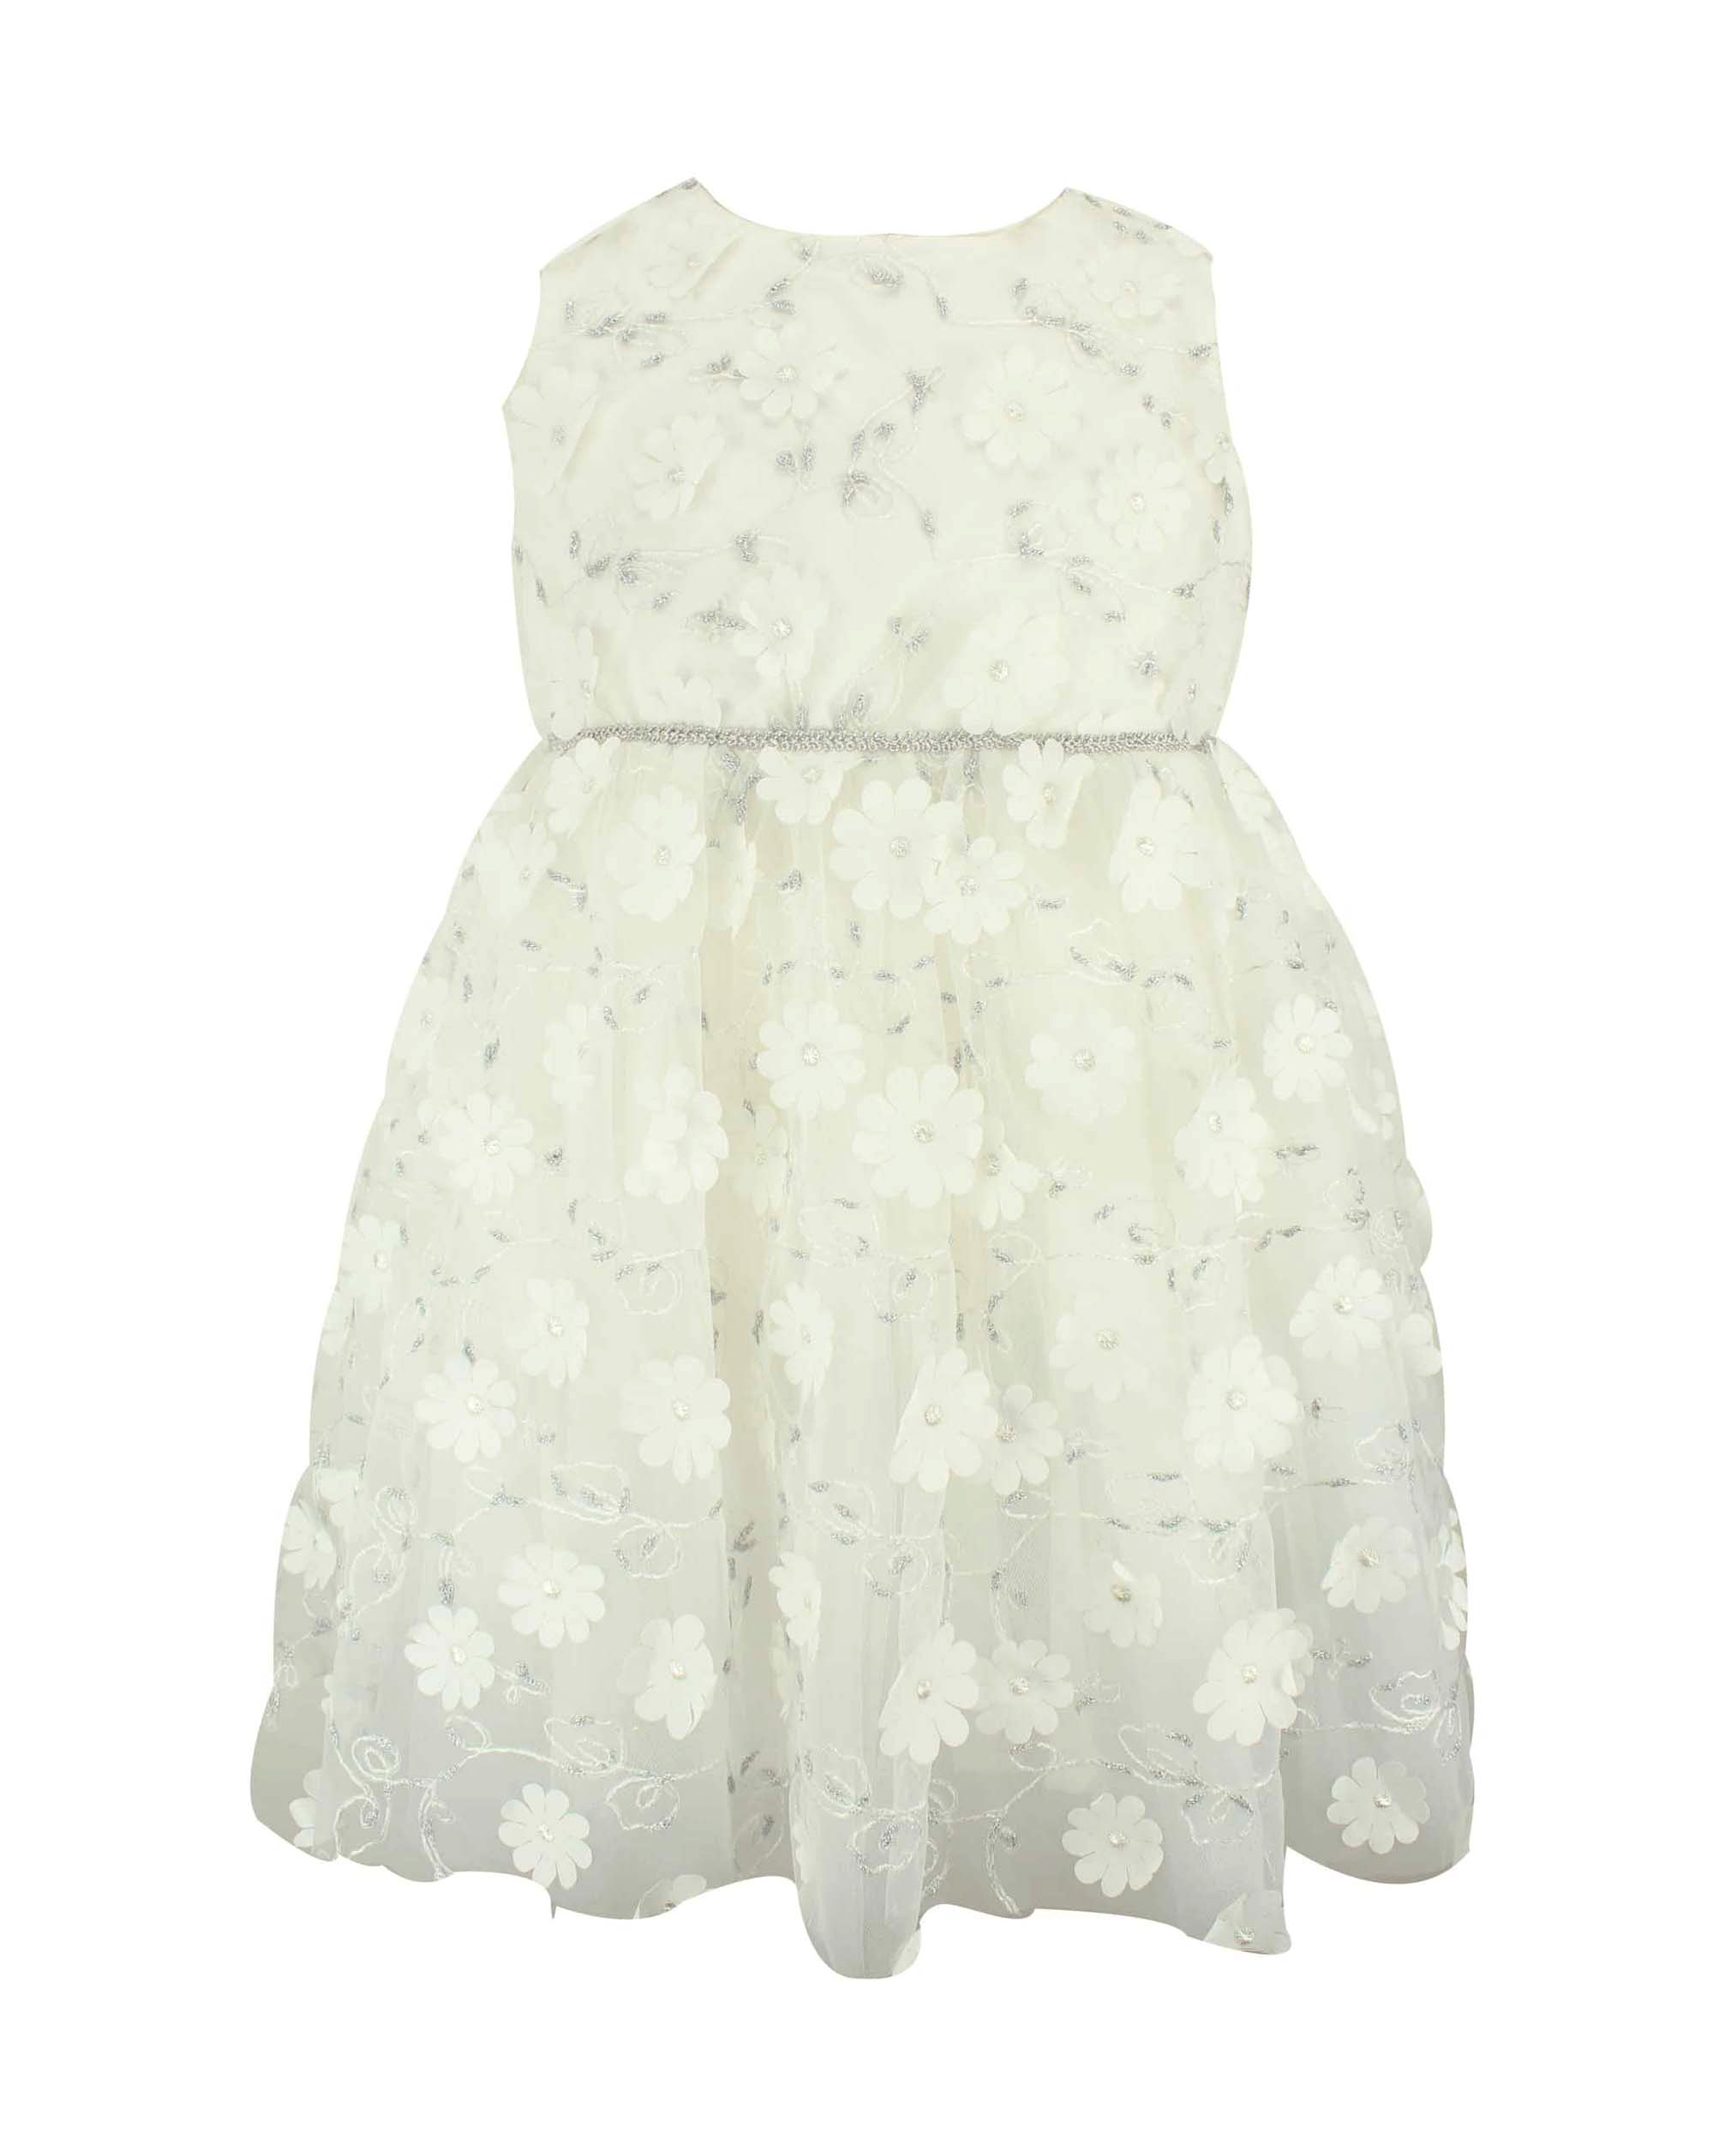 winter flower girl sleeveless metallic floral embroidery dress